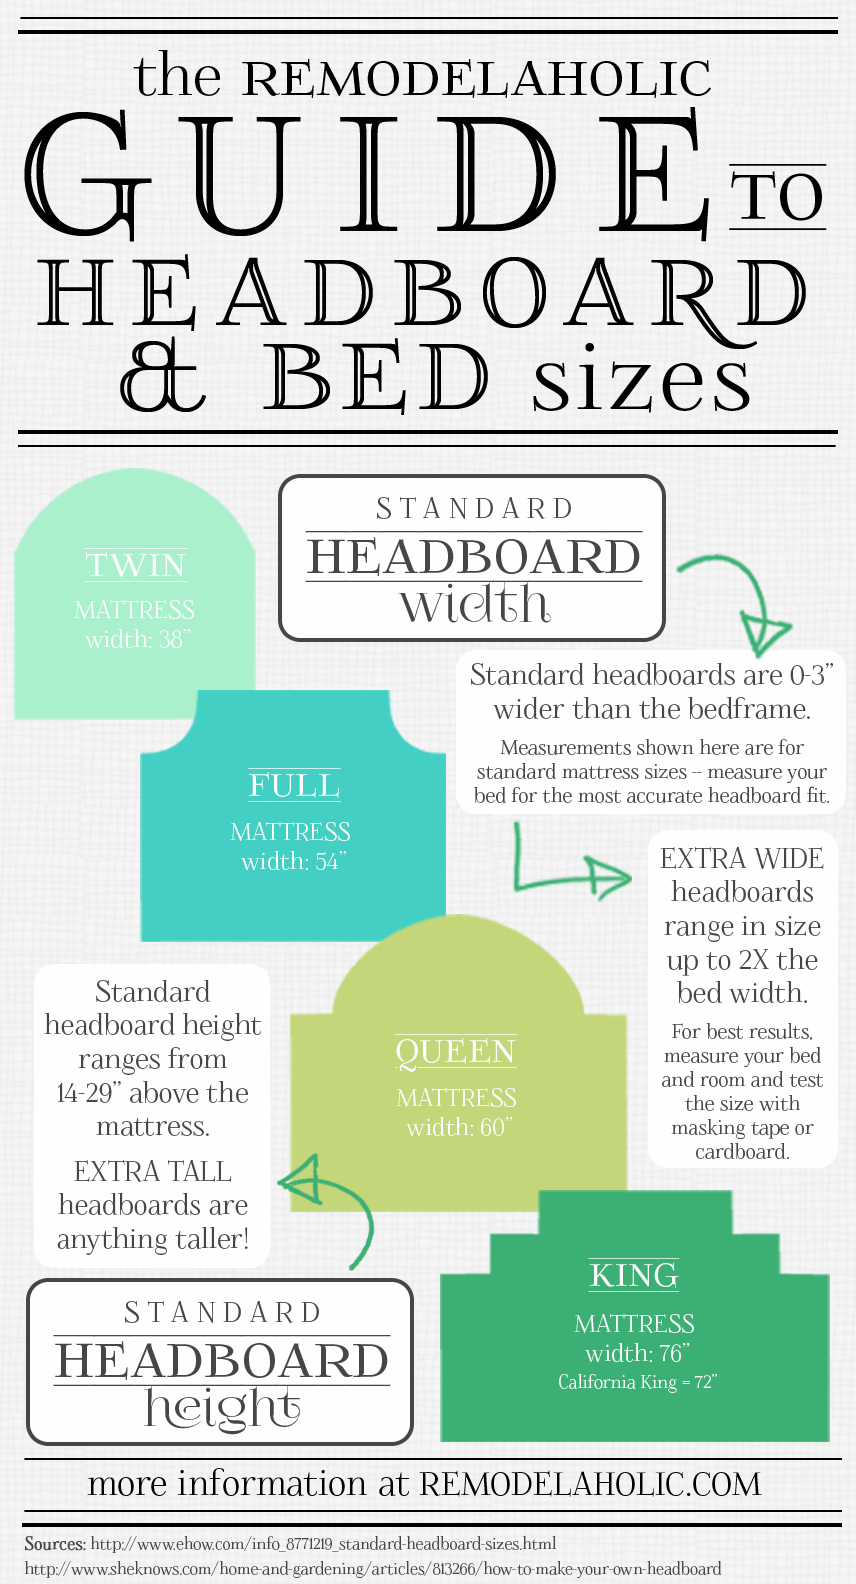 Remodelaholic | Your Guide to Headboard Sizes